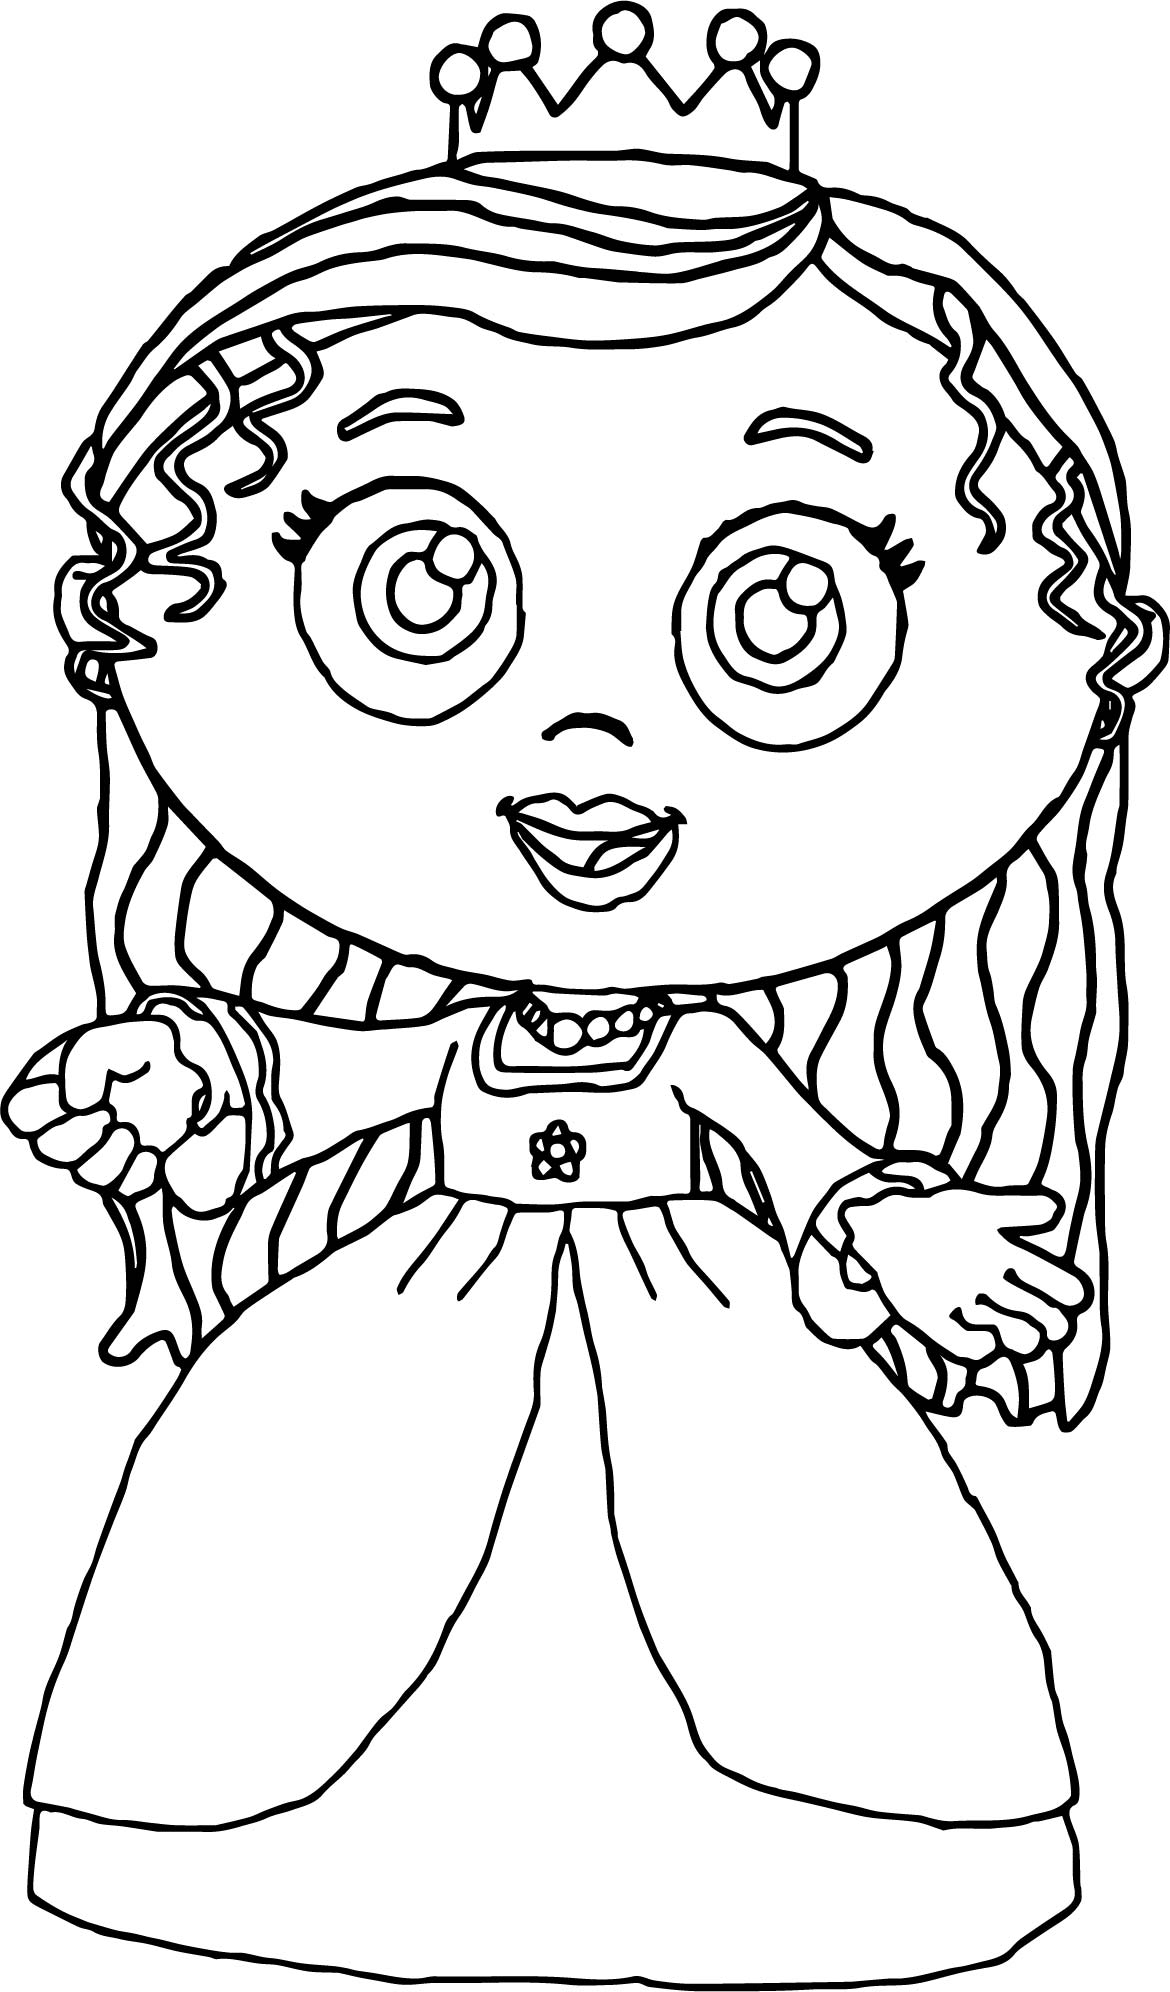 Princess Pea Super Why Coloring Page Wecoloringpage